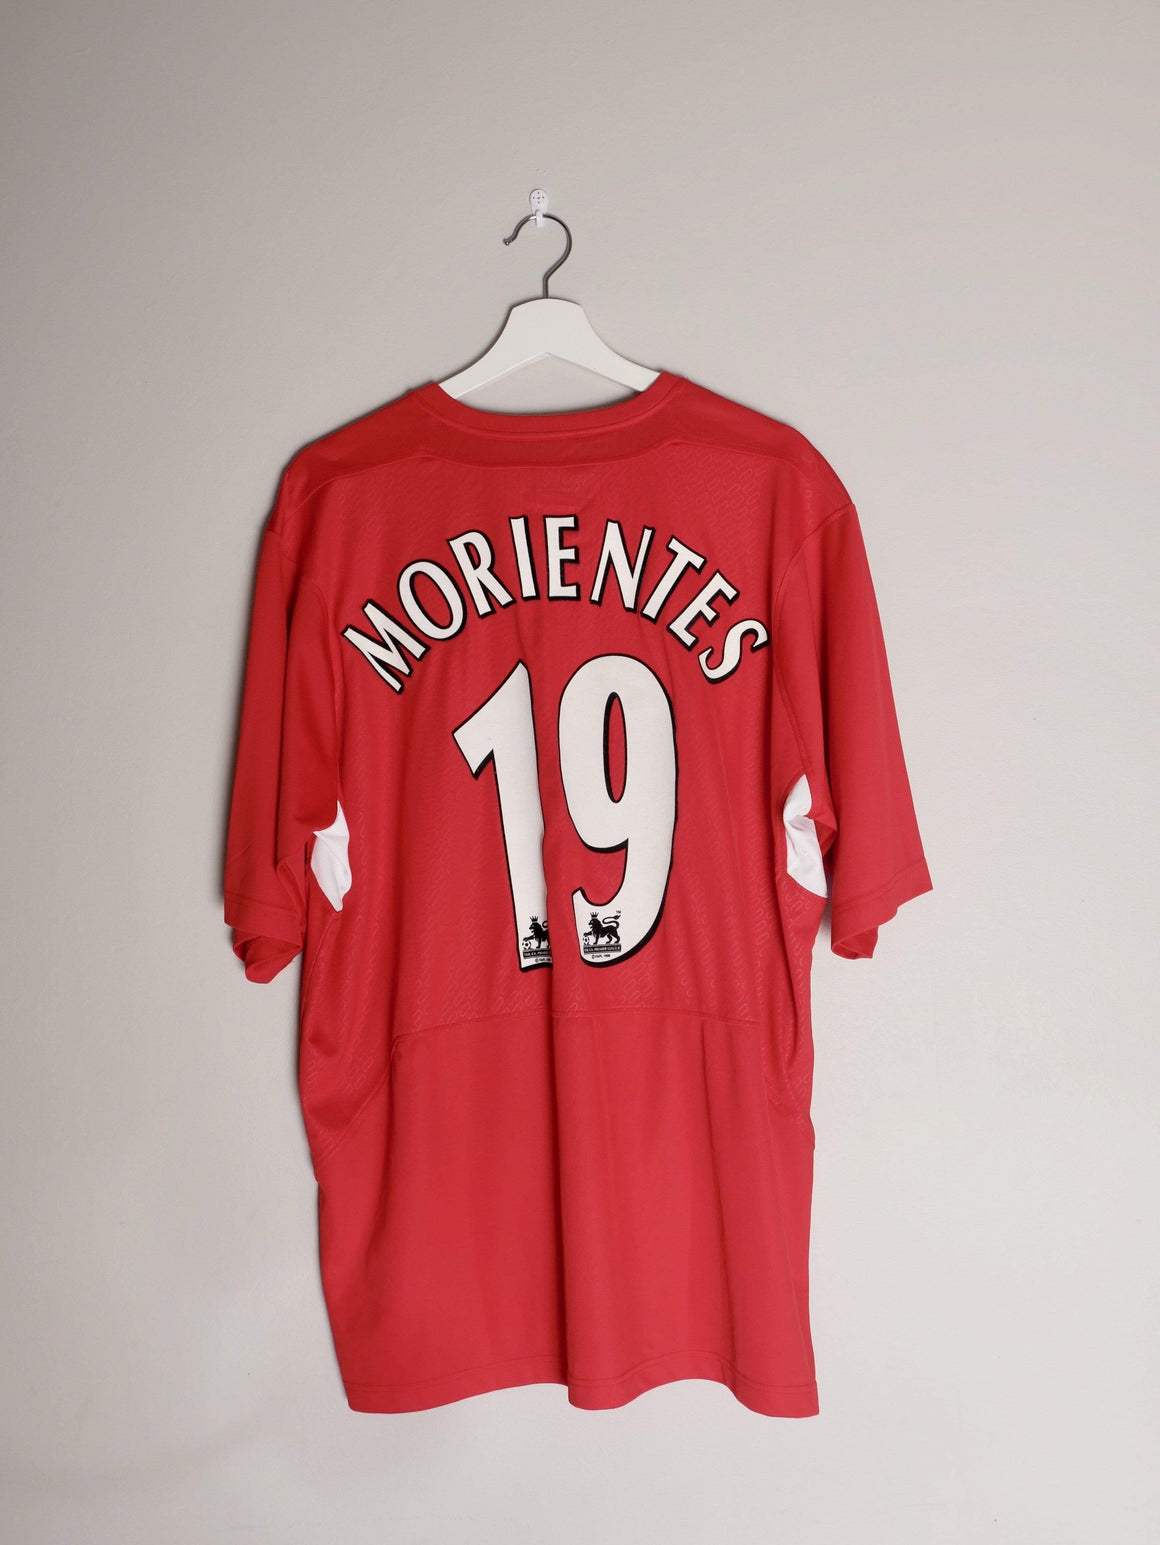 Football Shirt Collective 2005-06 Liverpool Home shirt XL Morientes 19 (Signed)